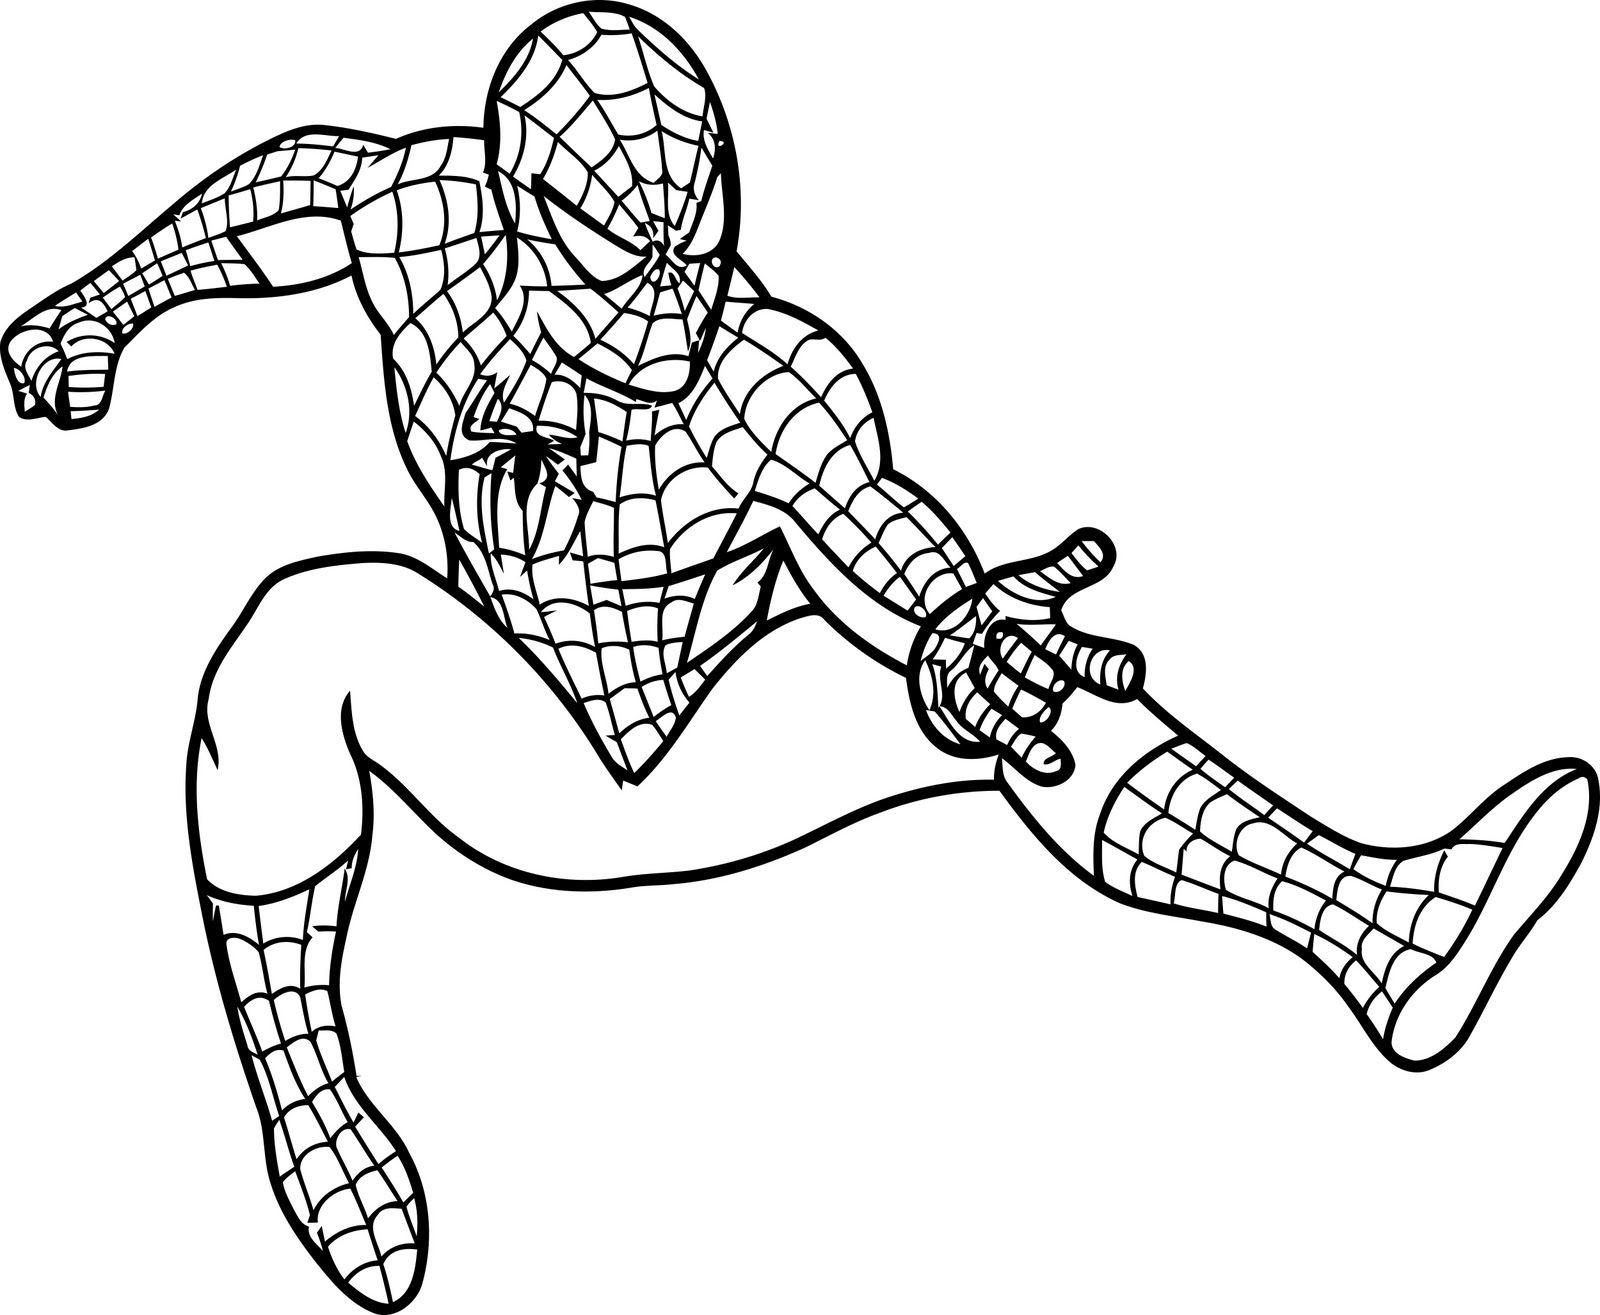 Spiderman Coloring Pages Download 19g - Free For Children